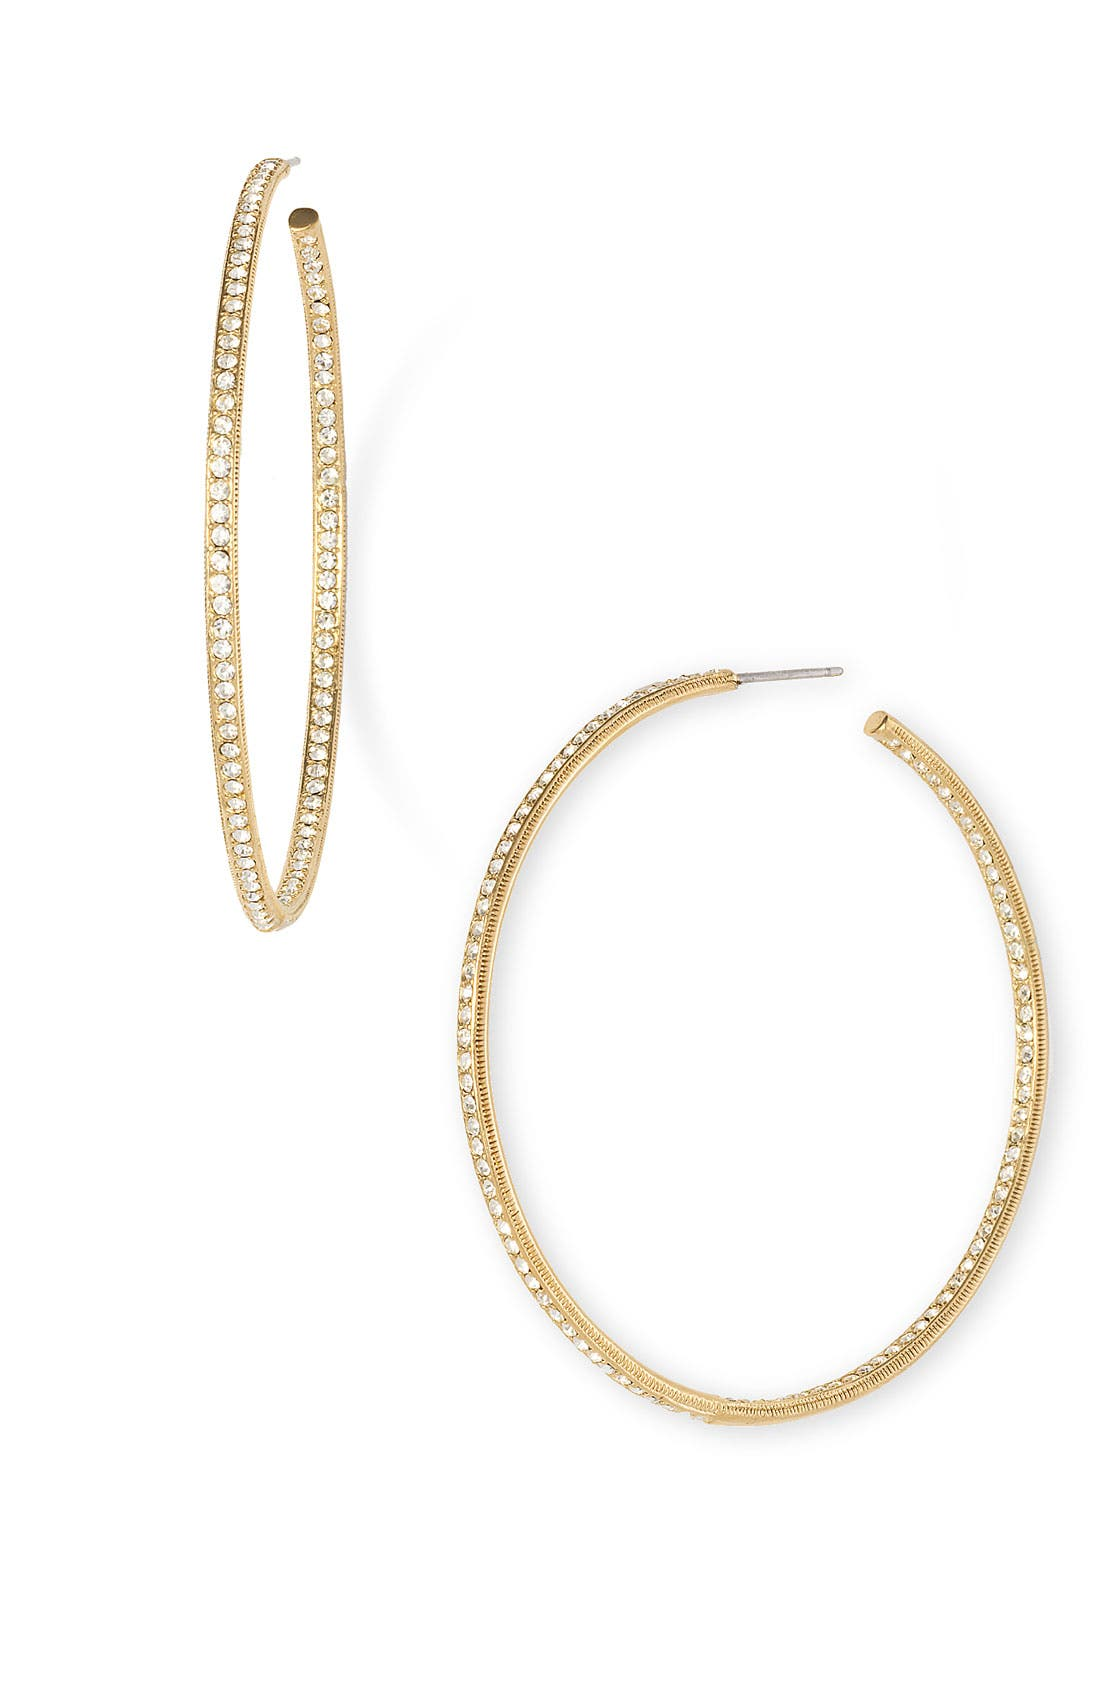 Main Image - Nadri Pavé Inside Out Hoop Earrings